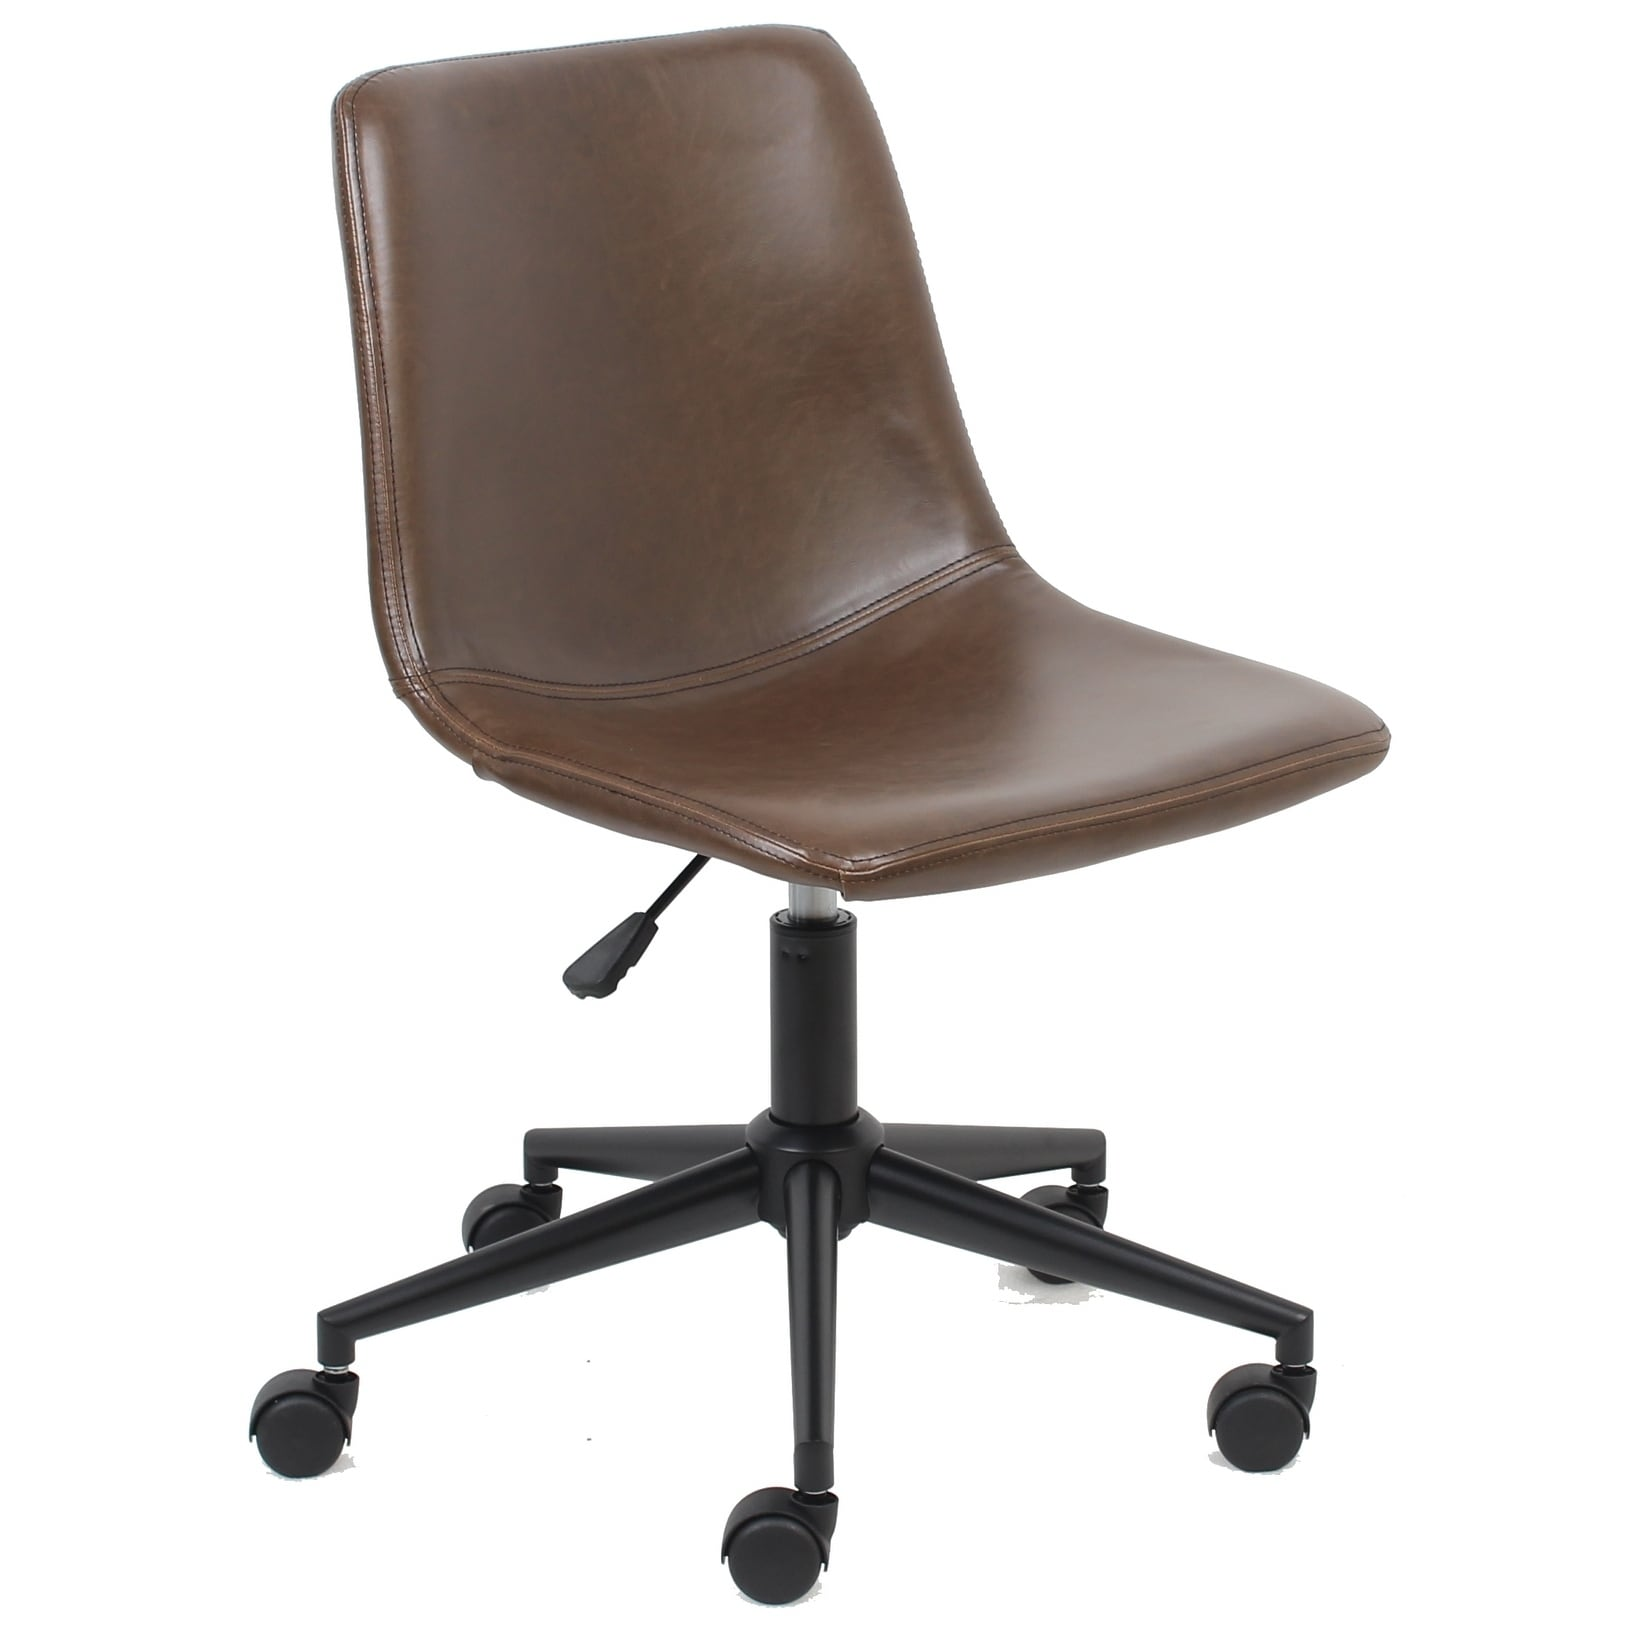 Merveilleux Shop BTExpert Mid Back Fuax Leather Task Chair, Brown Office Chair   N/A    Free Shipping Today   Overstock.com   23111583